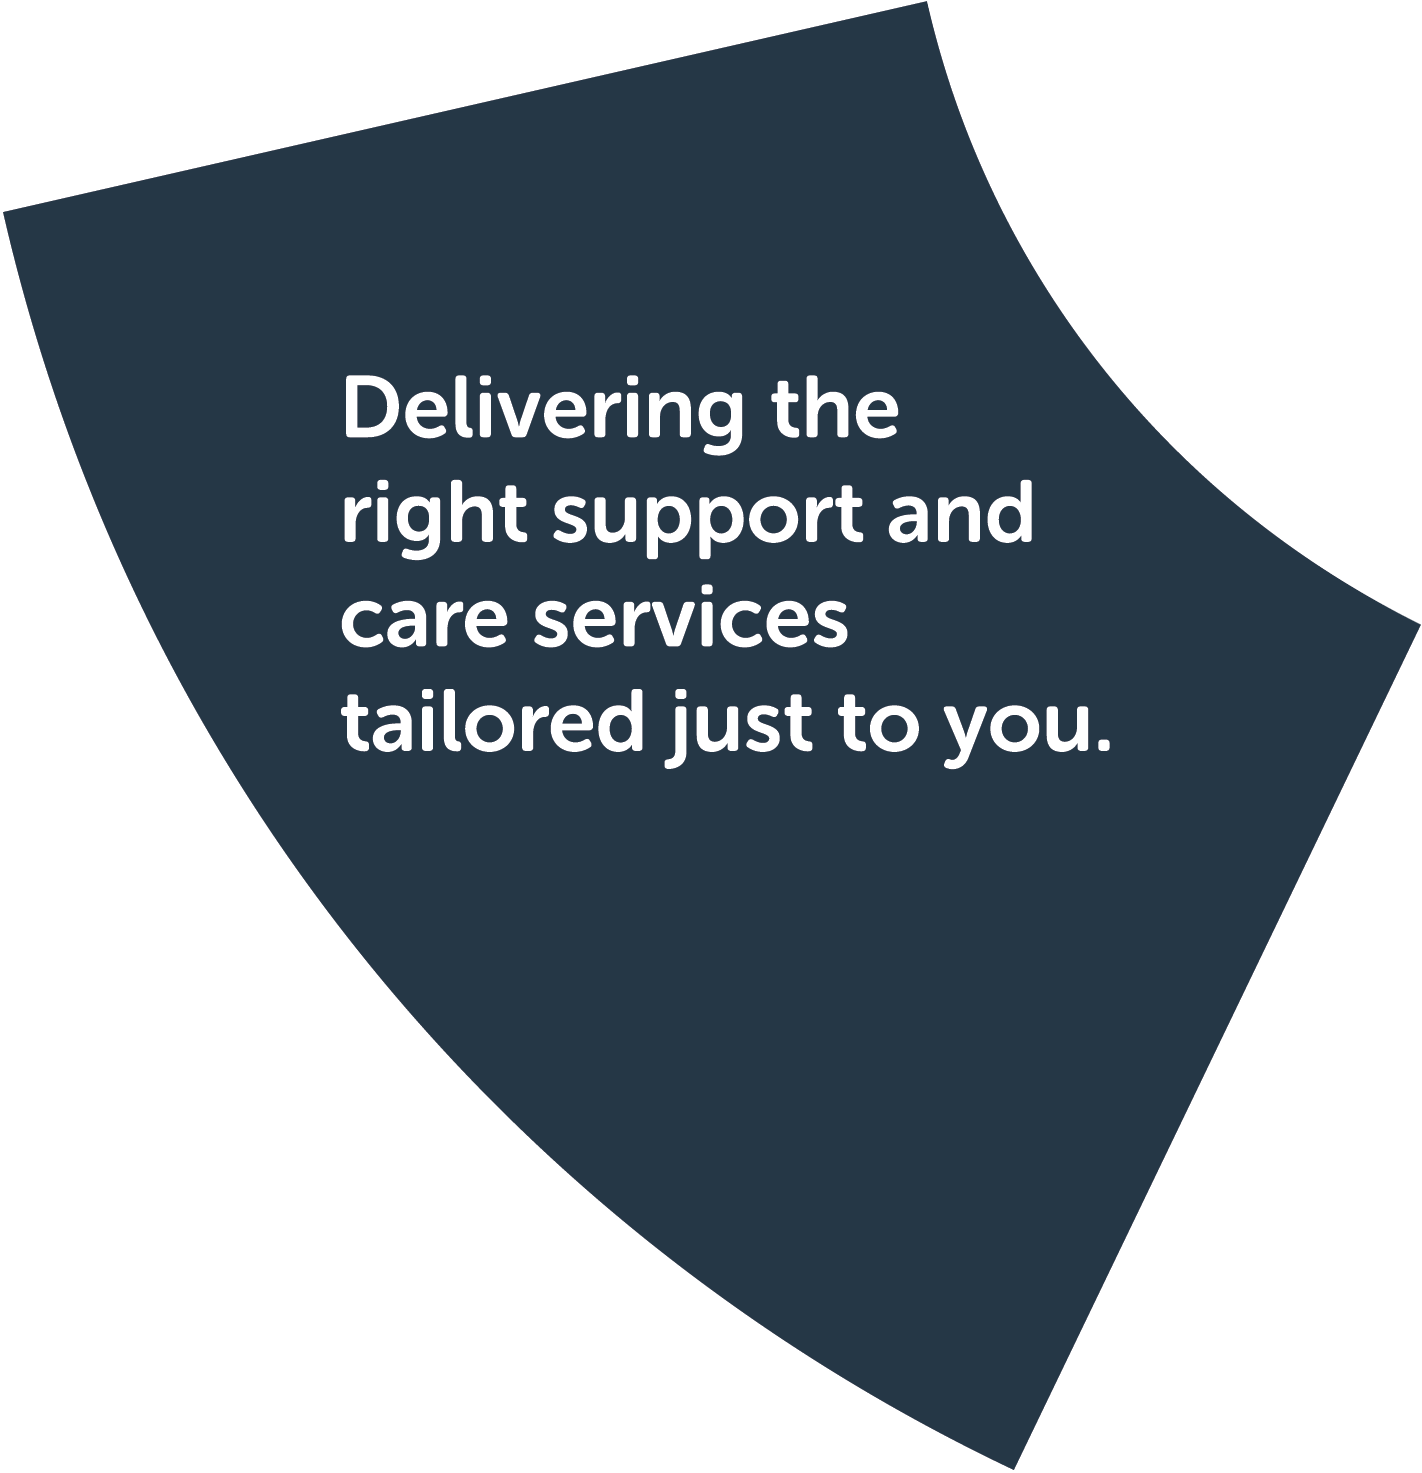 Step 5: Receive services and support. Delivering the right support and care services tailored just to you.